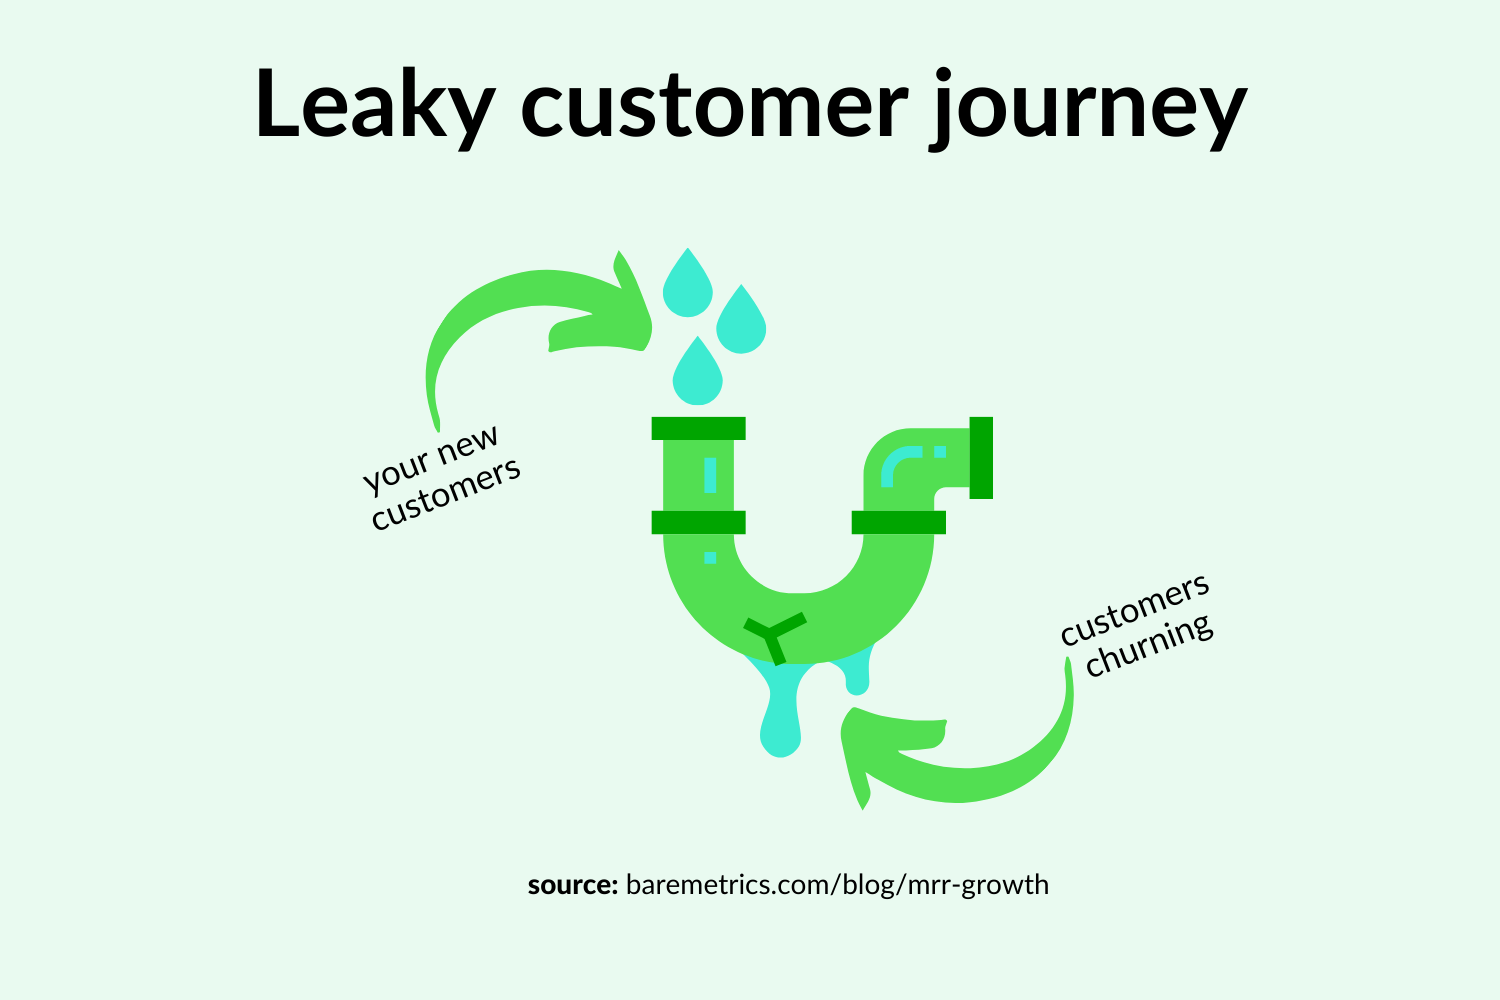 leaky customer journey